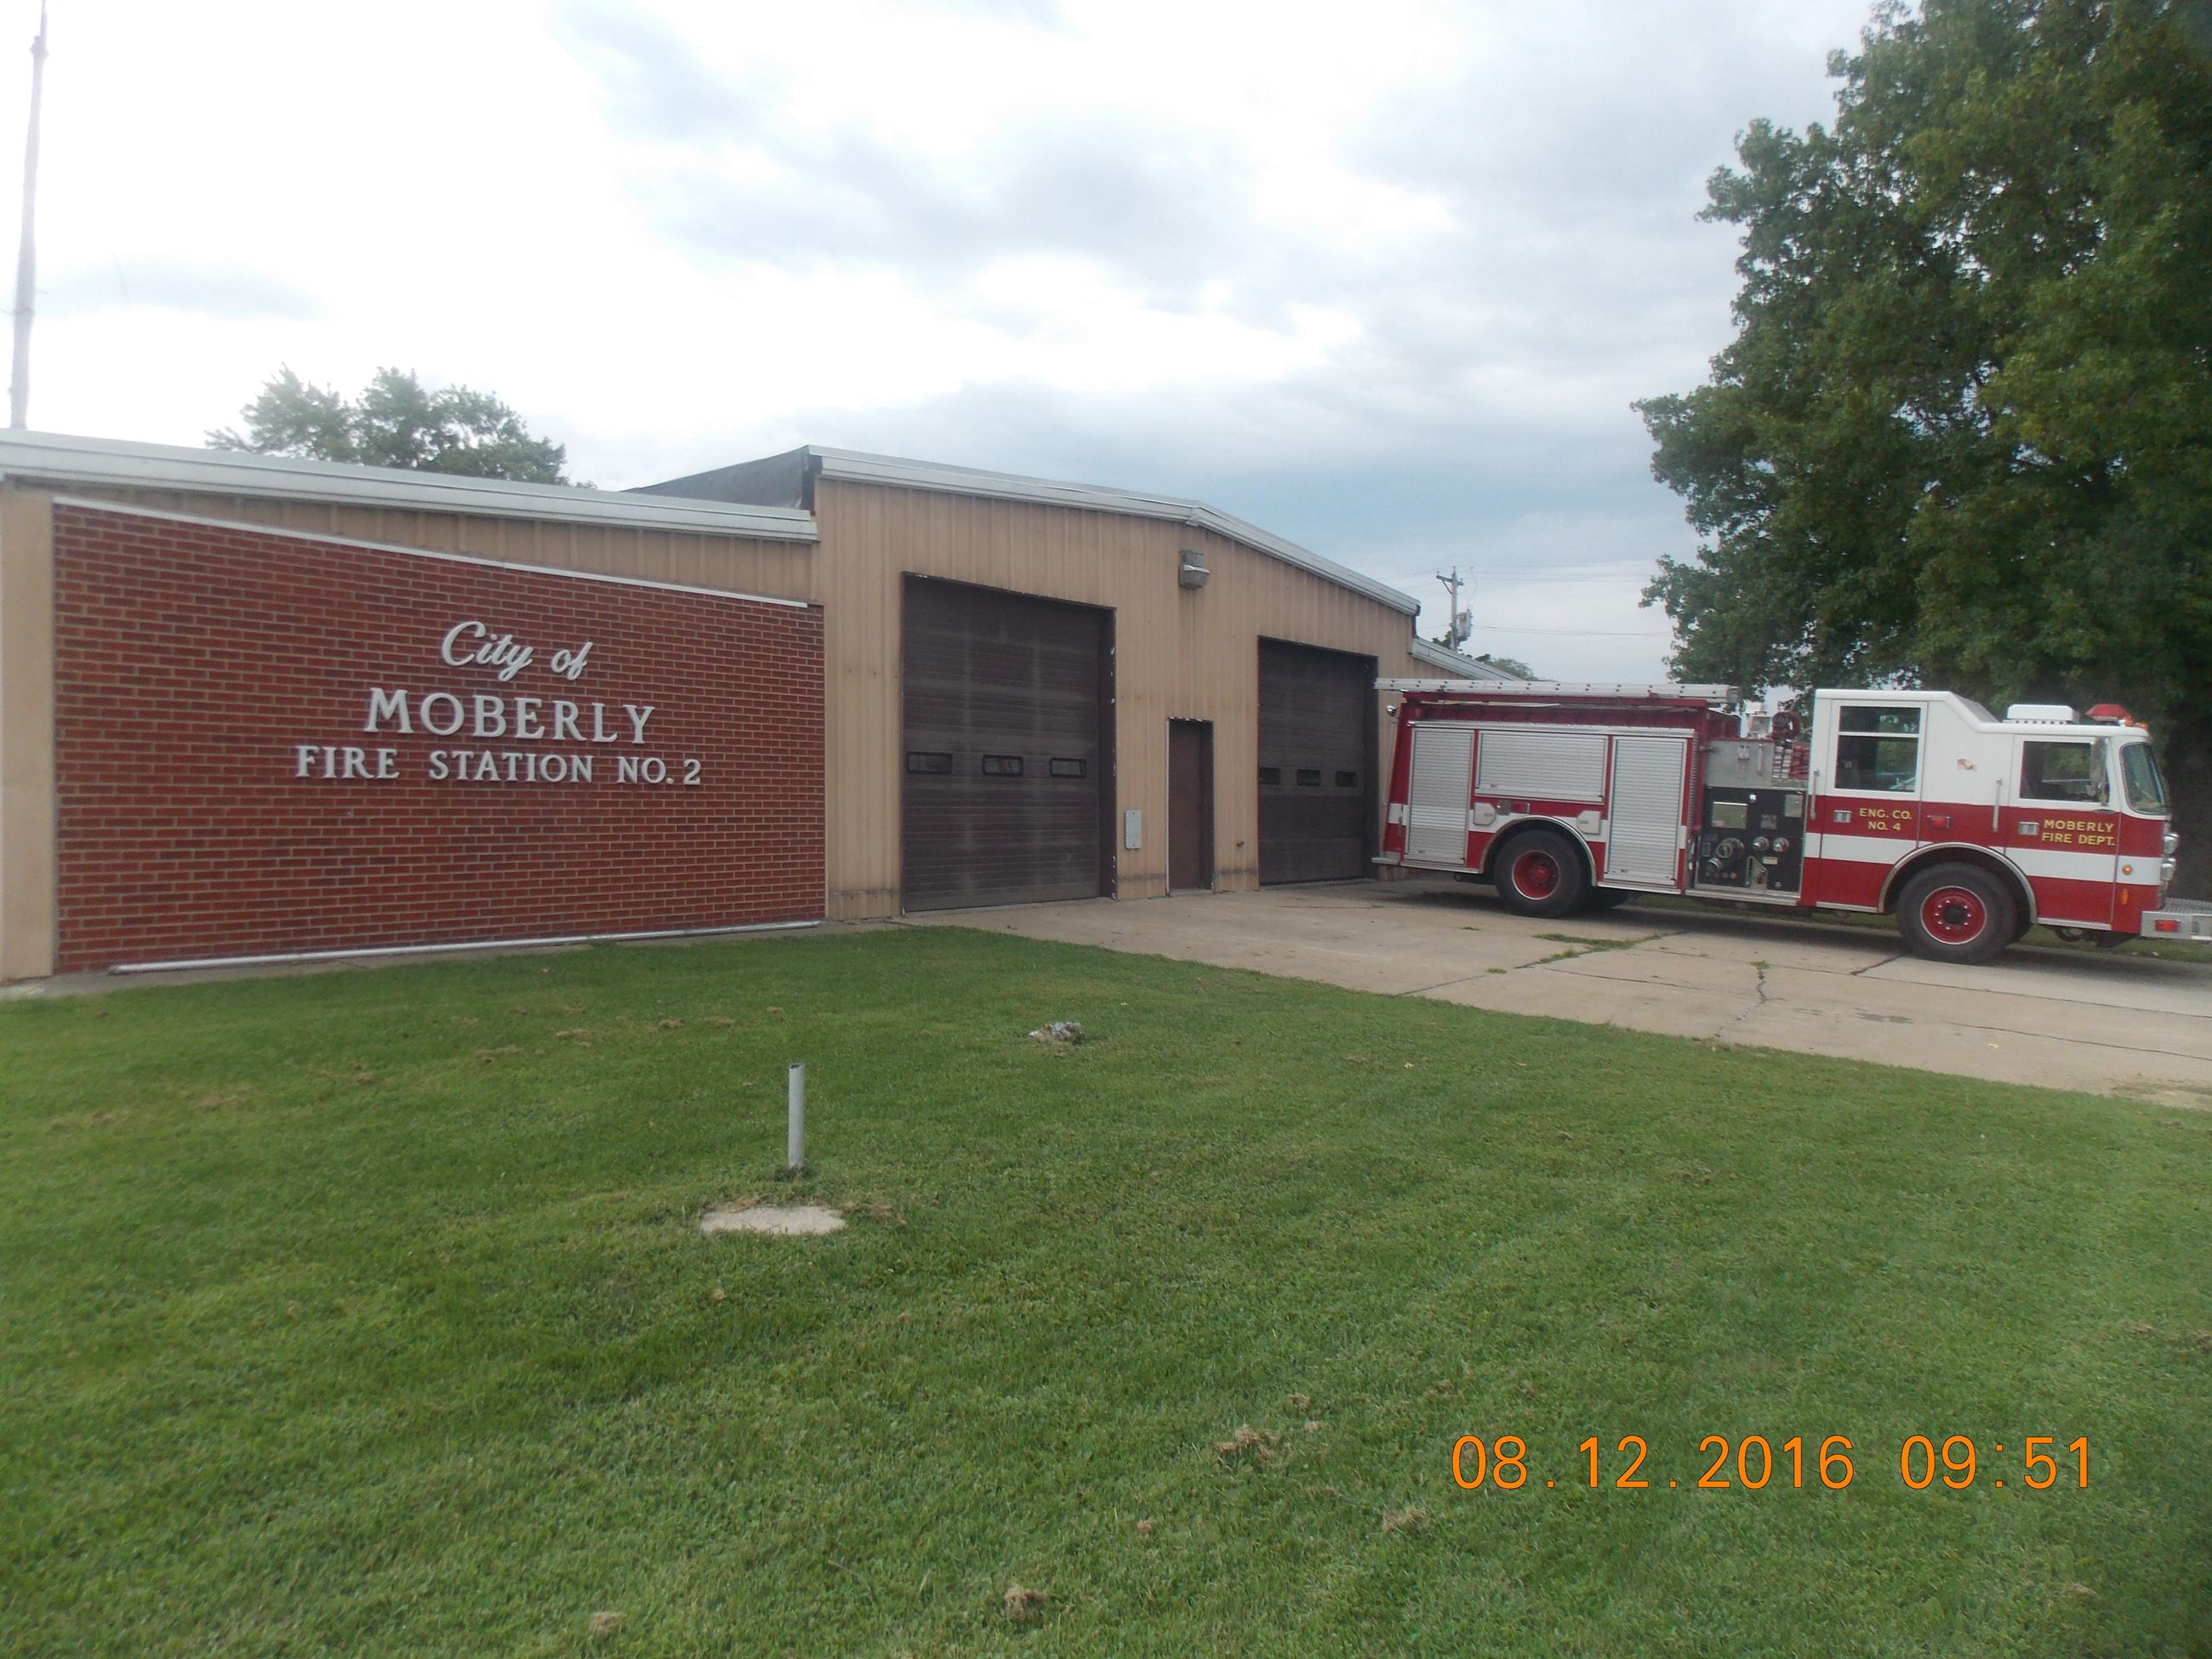 Moberly fire station #2